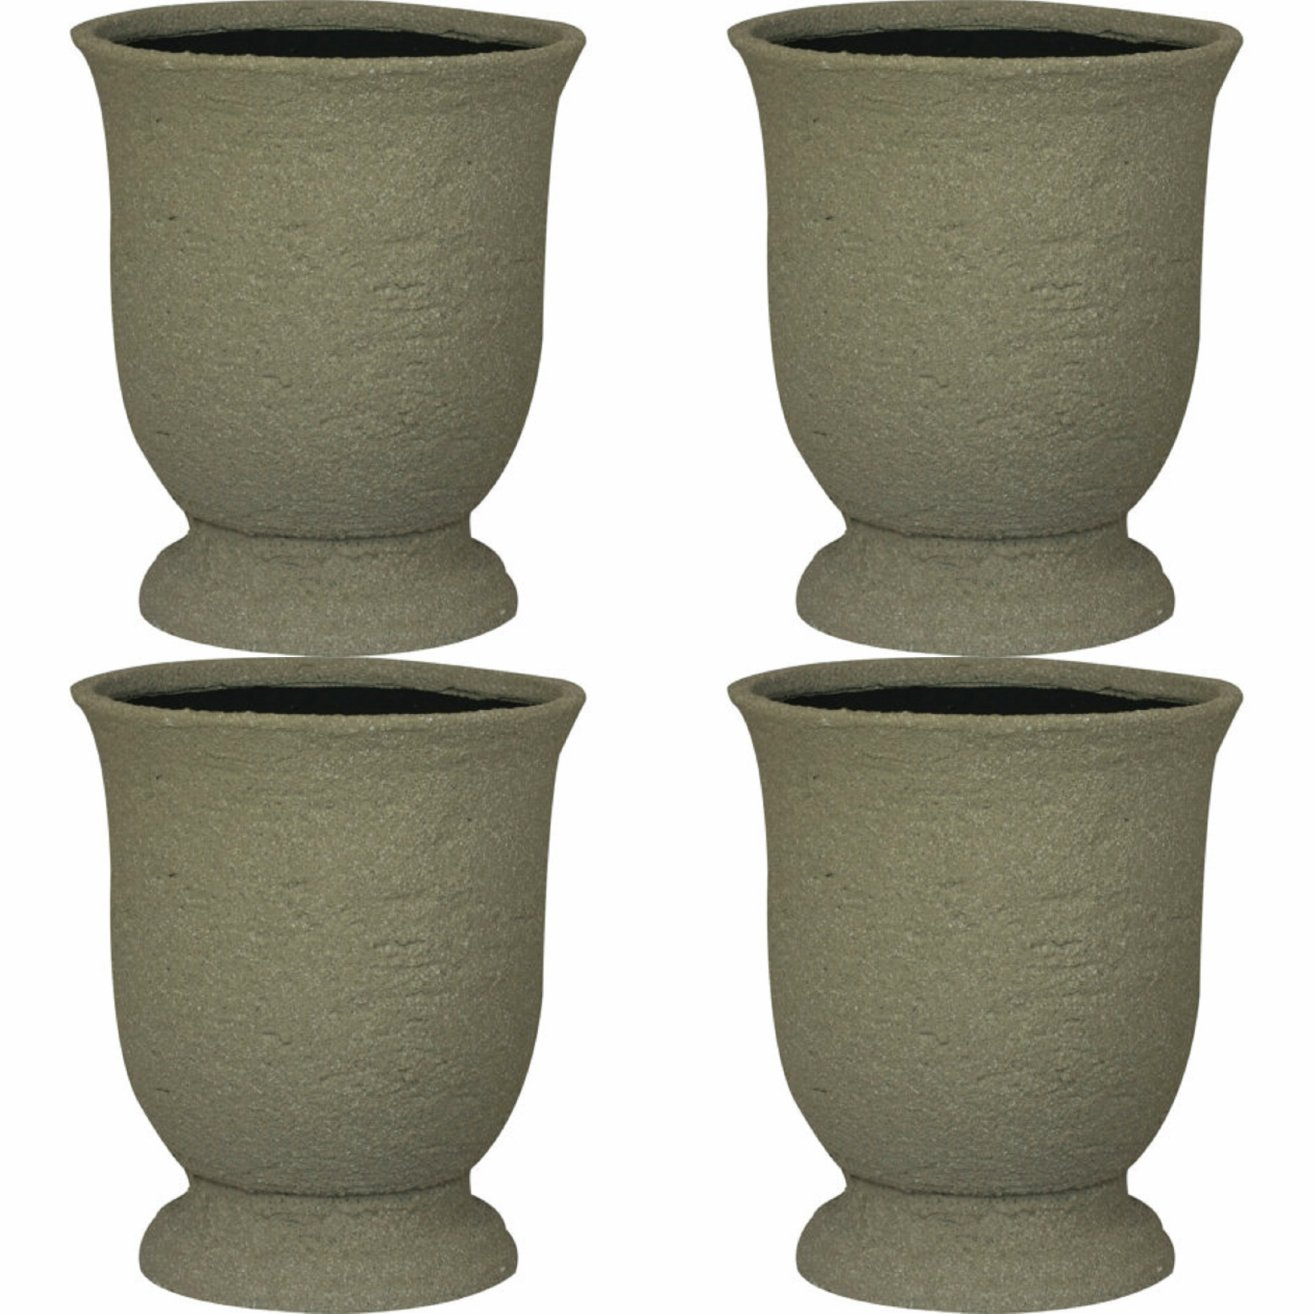 Stone-Like Durable Urn Planter - UV, Weather and Impact Resistant - 11'' Dia - set of 4 (Lime Stone) by WILLIAMS BAY PRODUCTS